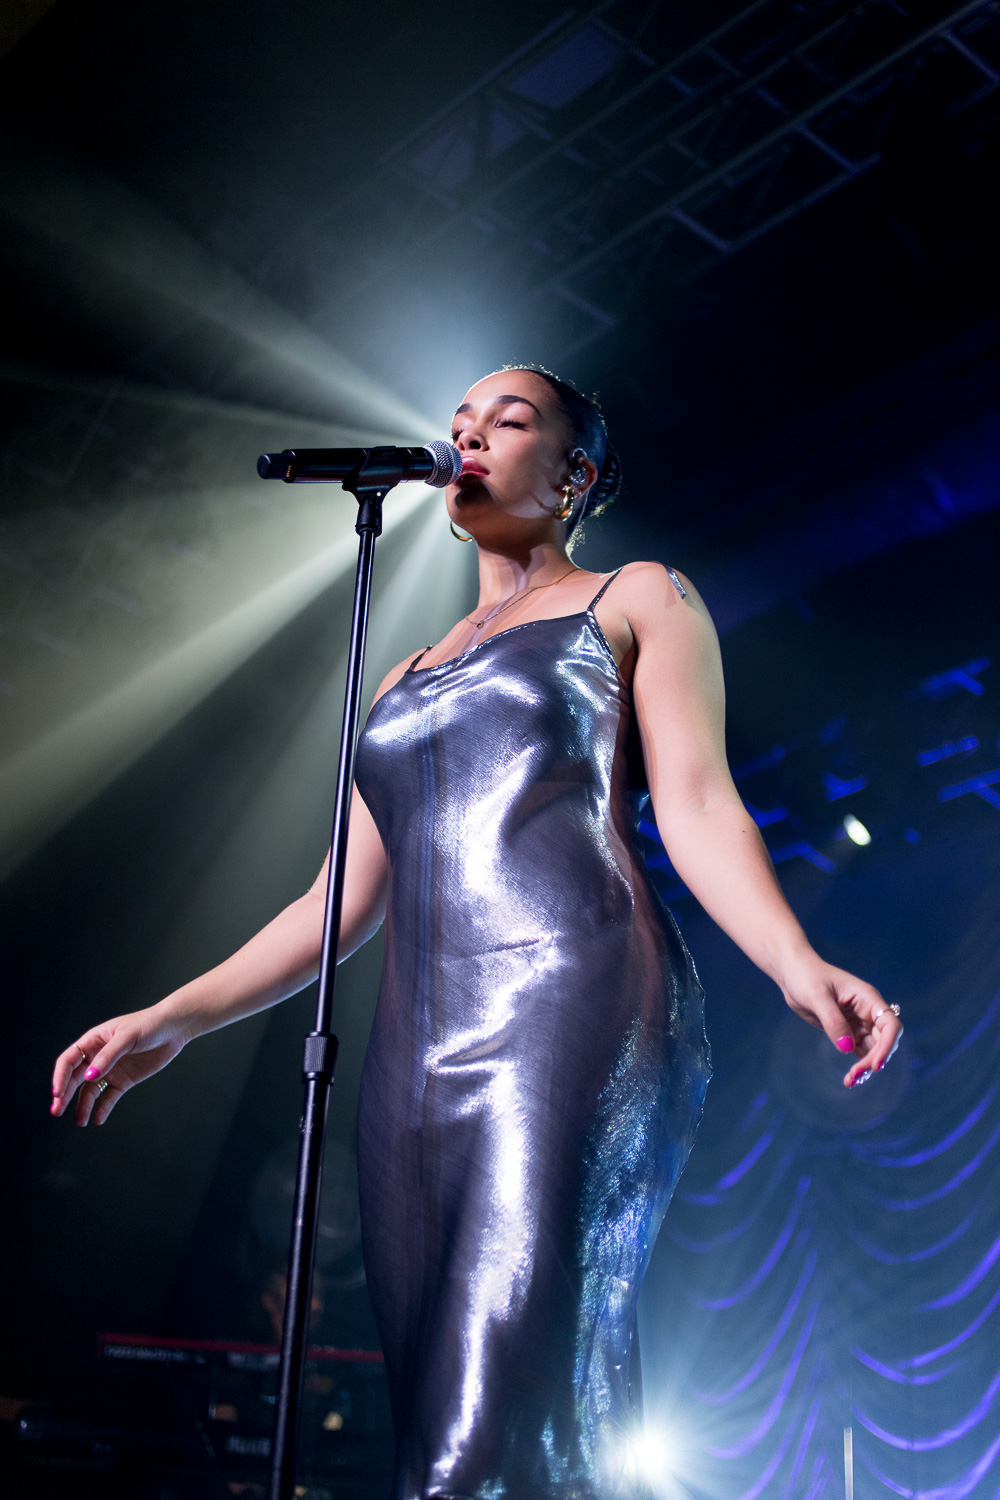 Jorja Smith at The Van Buren. Phoenix, AZ 2018